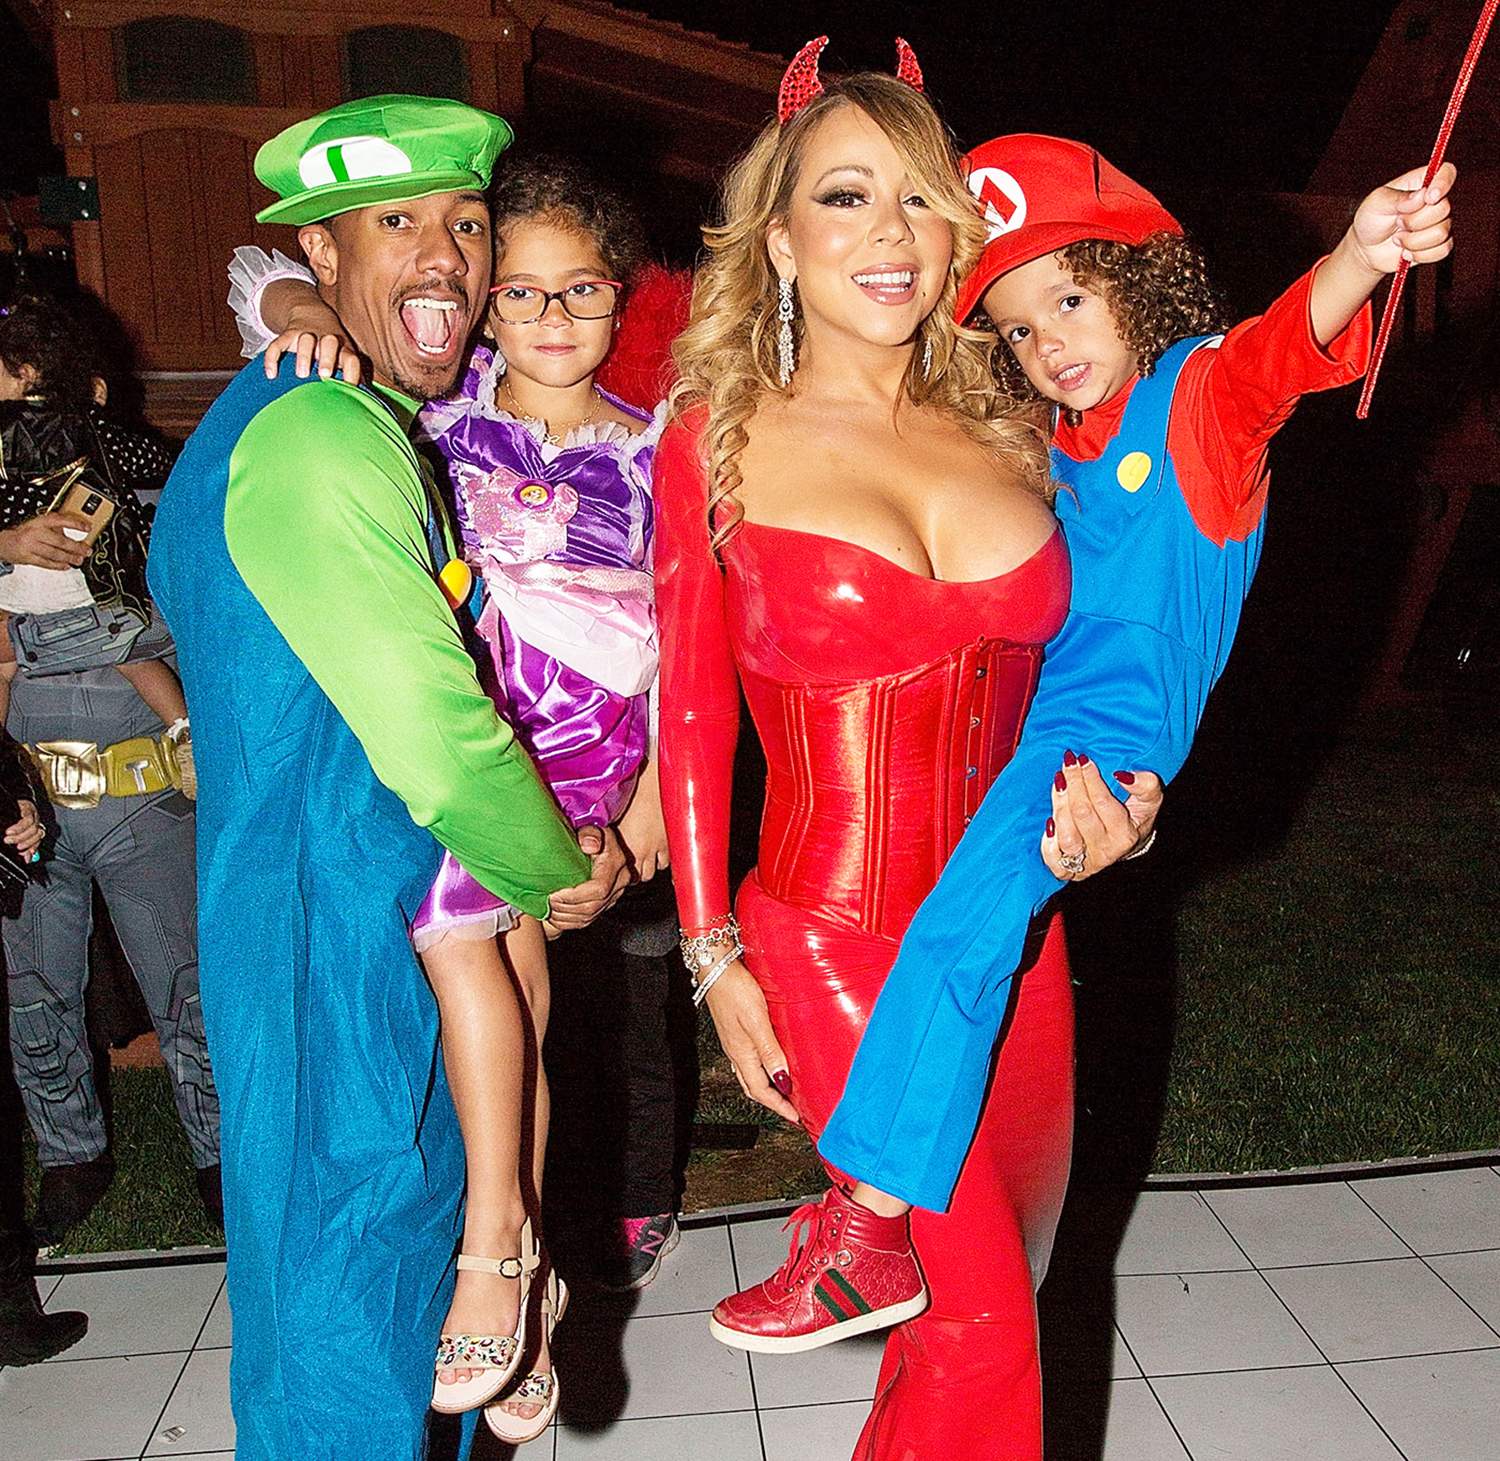 Nick Cannon, Monroe Cannon, Mariah Carey, and Moroccan Cannon attend Mariah Carey's Halloween Party on October 22, 2016 in Los Angeles, California.